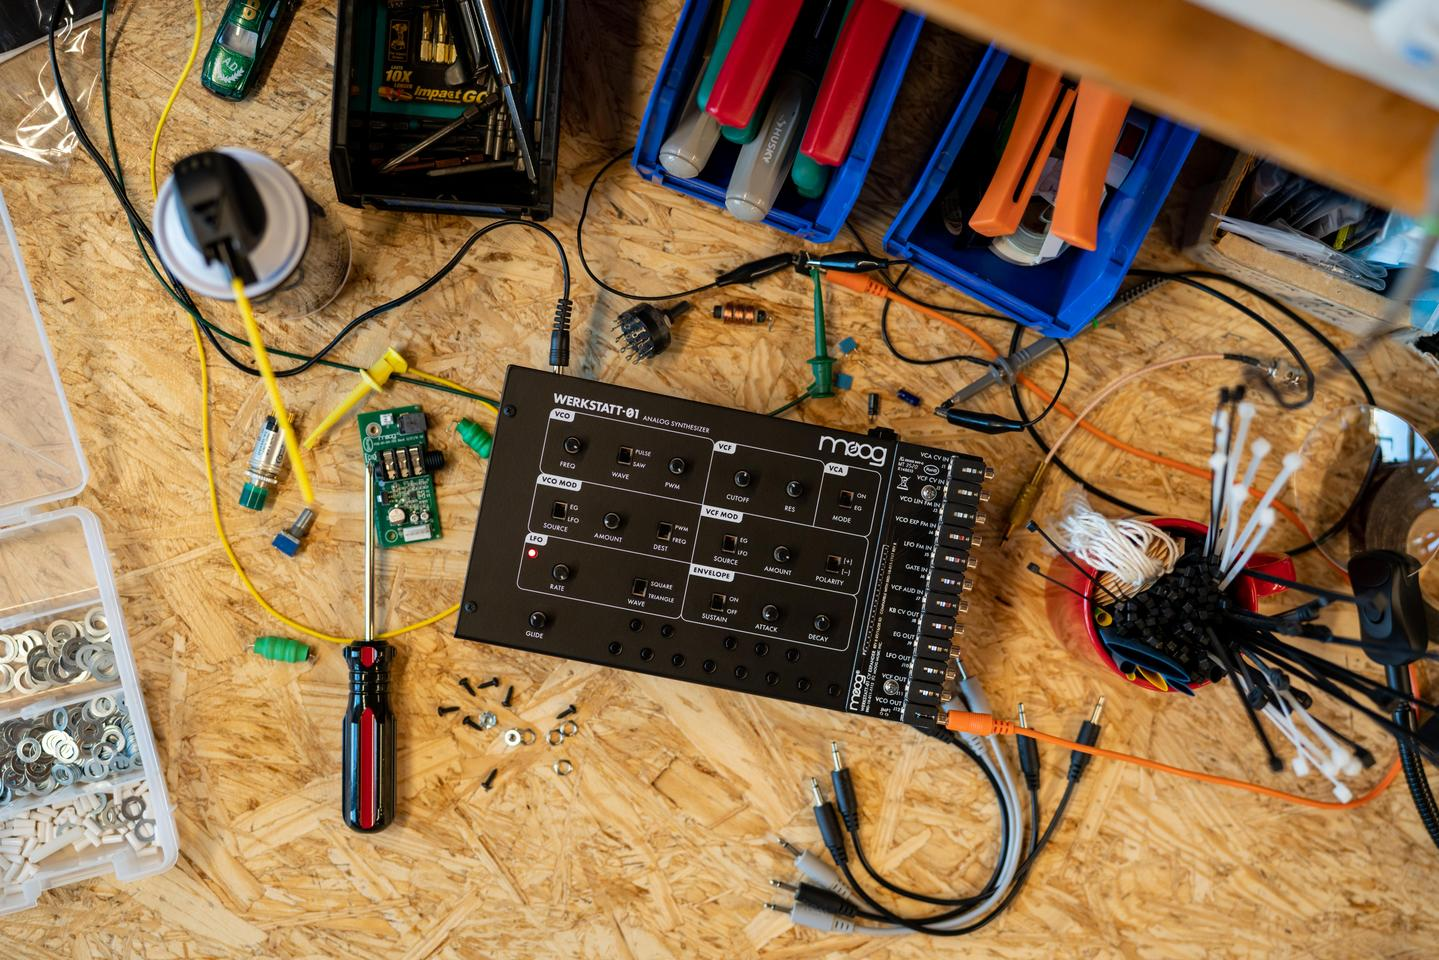 The Werkstatt-01 was originally designed as an educational tool for teaching electronics assembly